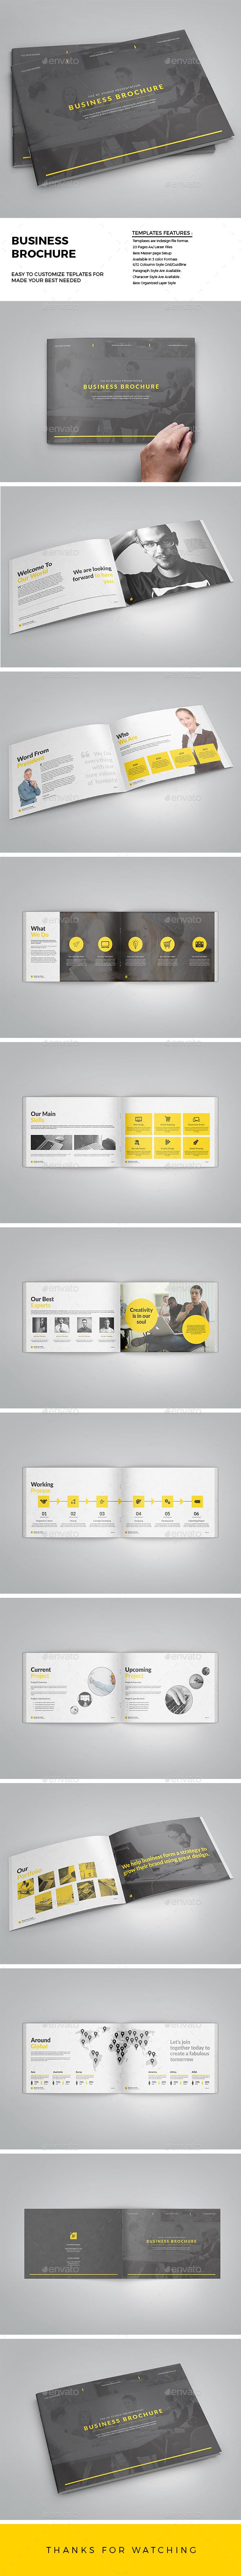 Brochure - InDesign Template • Only available here! ➝ https://graphicriver.net/item/brochure/13027051?ref=pxcr